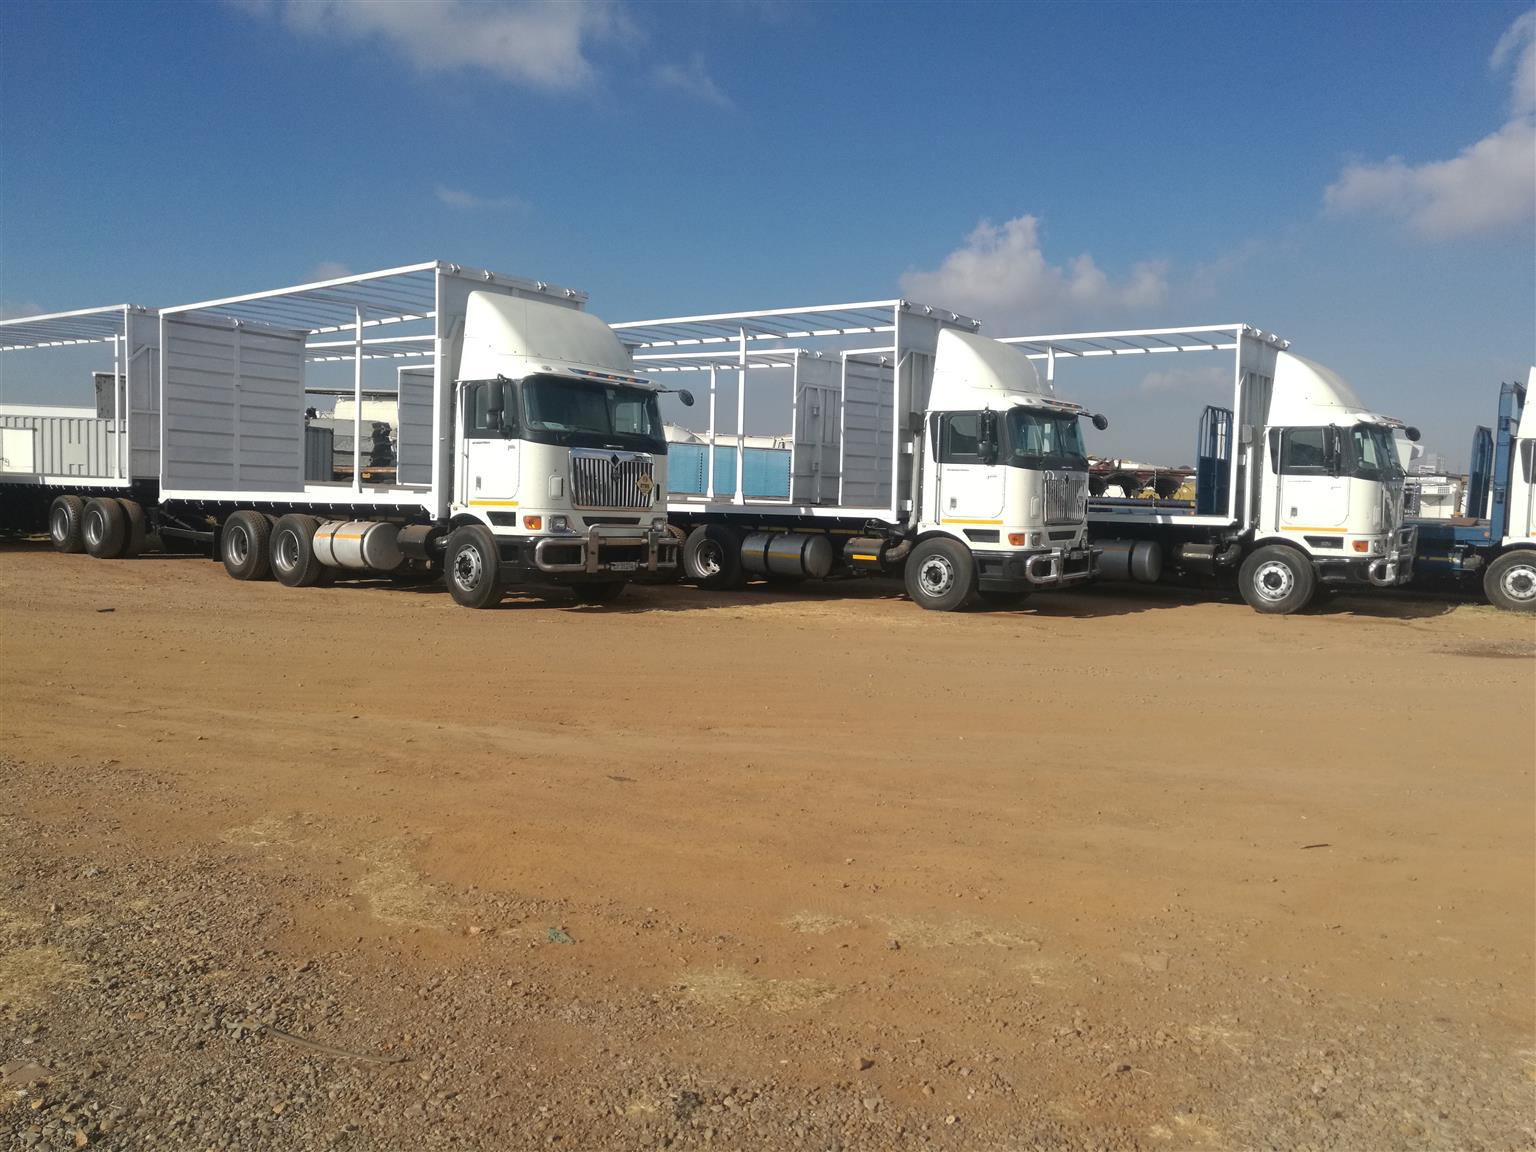 INTERNATIONAL SUPELINK FLATBED AND TUATLINERS FOR SALE. POSTED MUHAMMAD